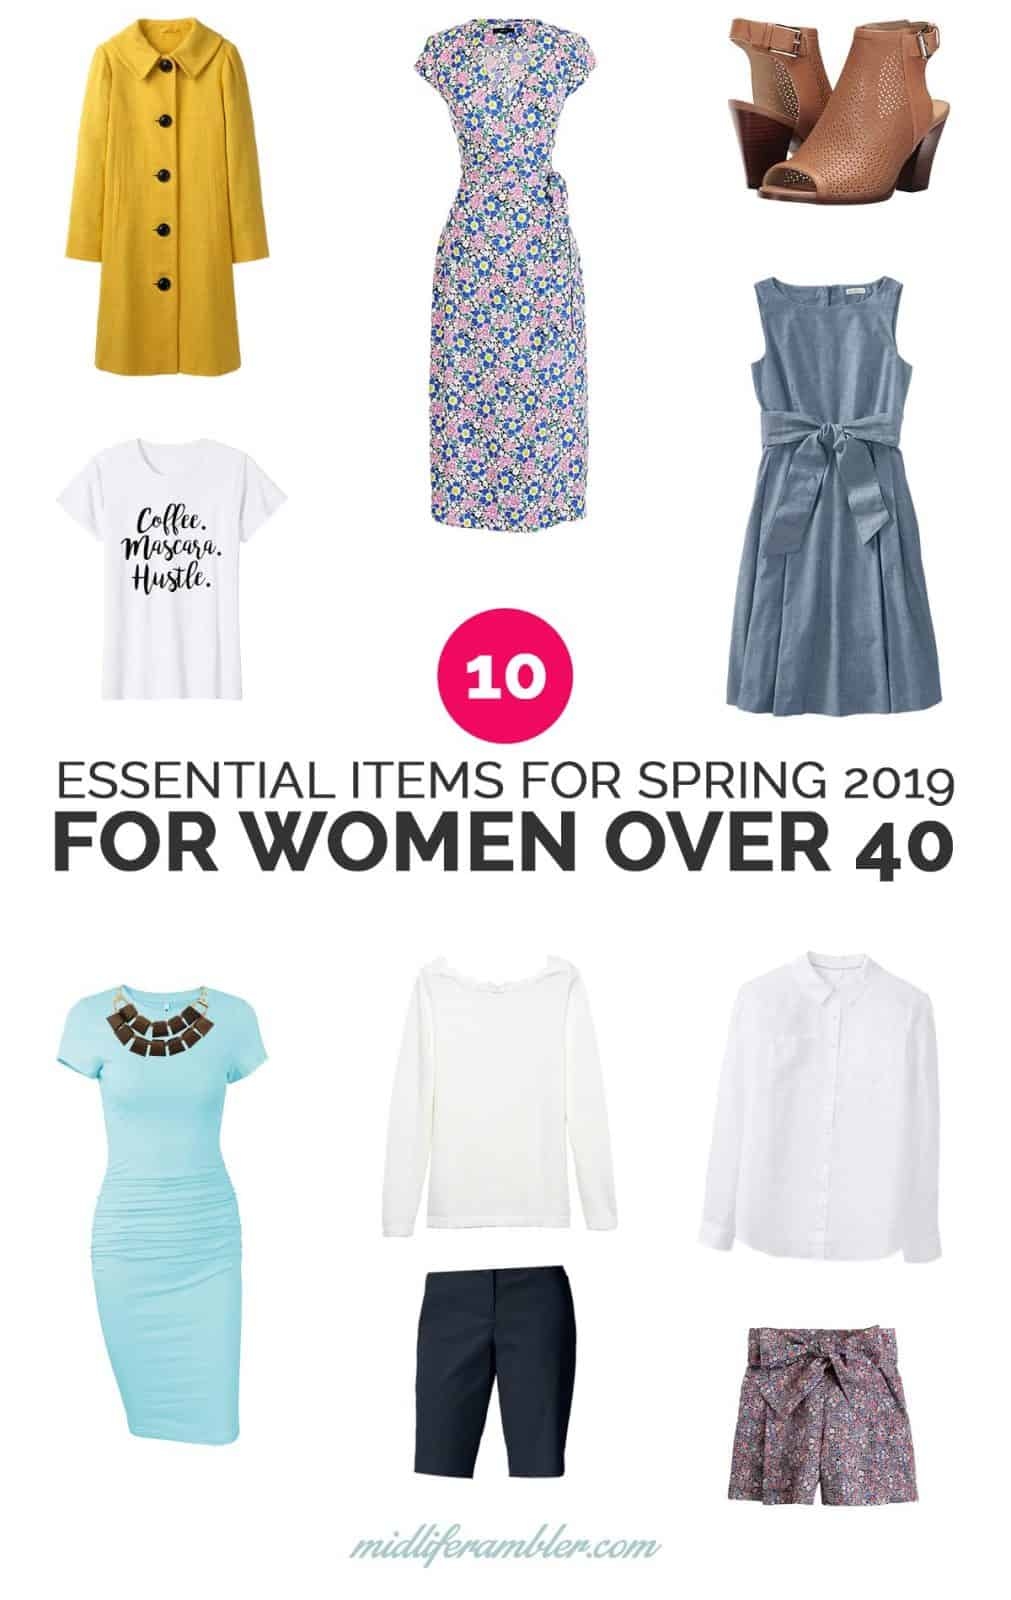 10 Essential Items for Women Over 40 to Update Your Wardrobe for Spring and Summer 22